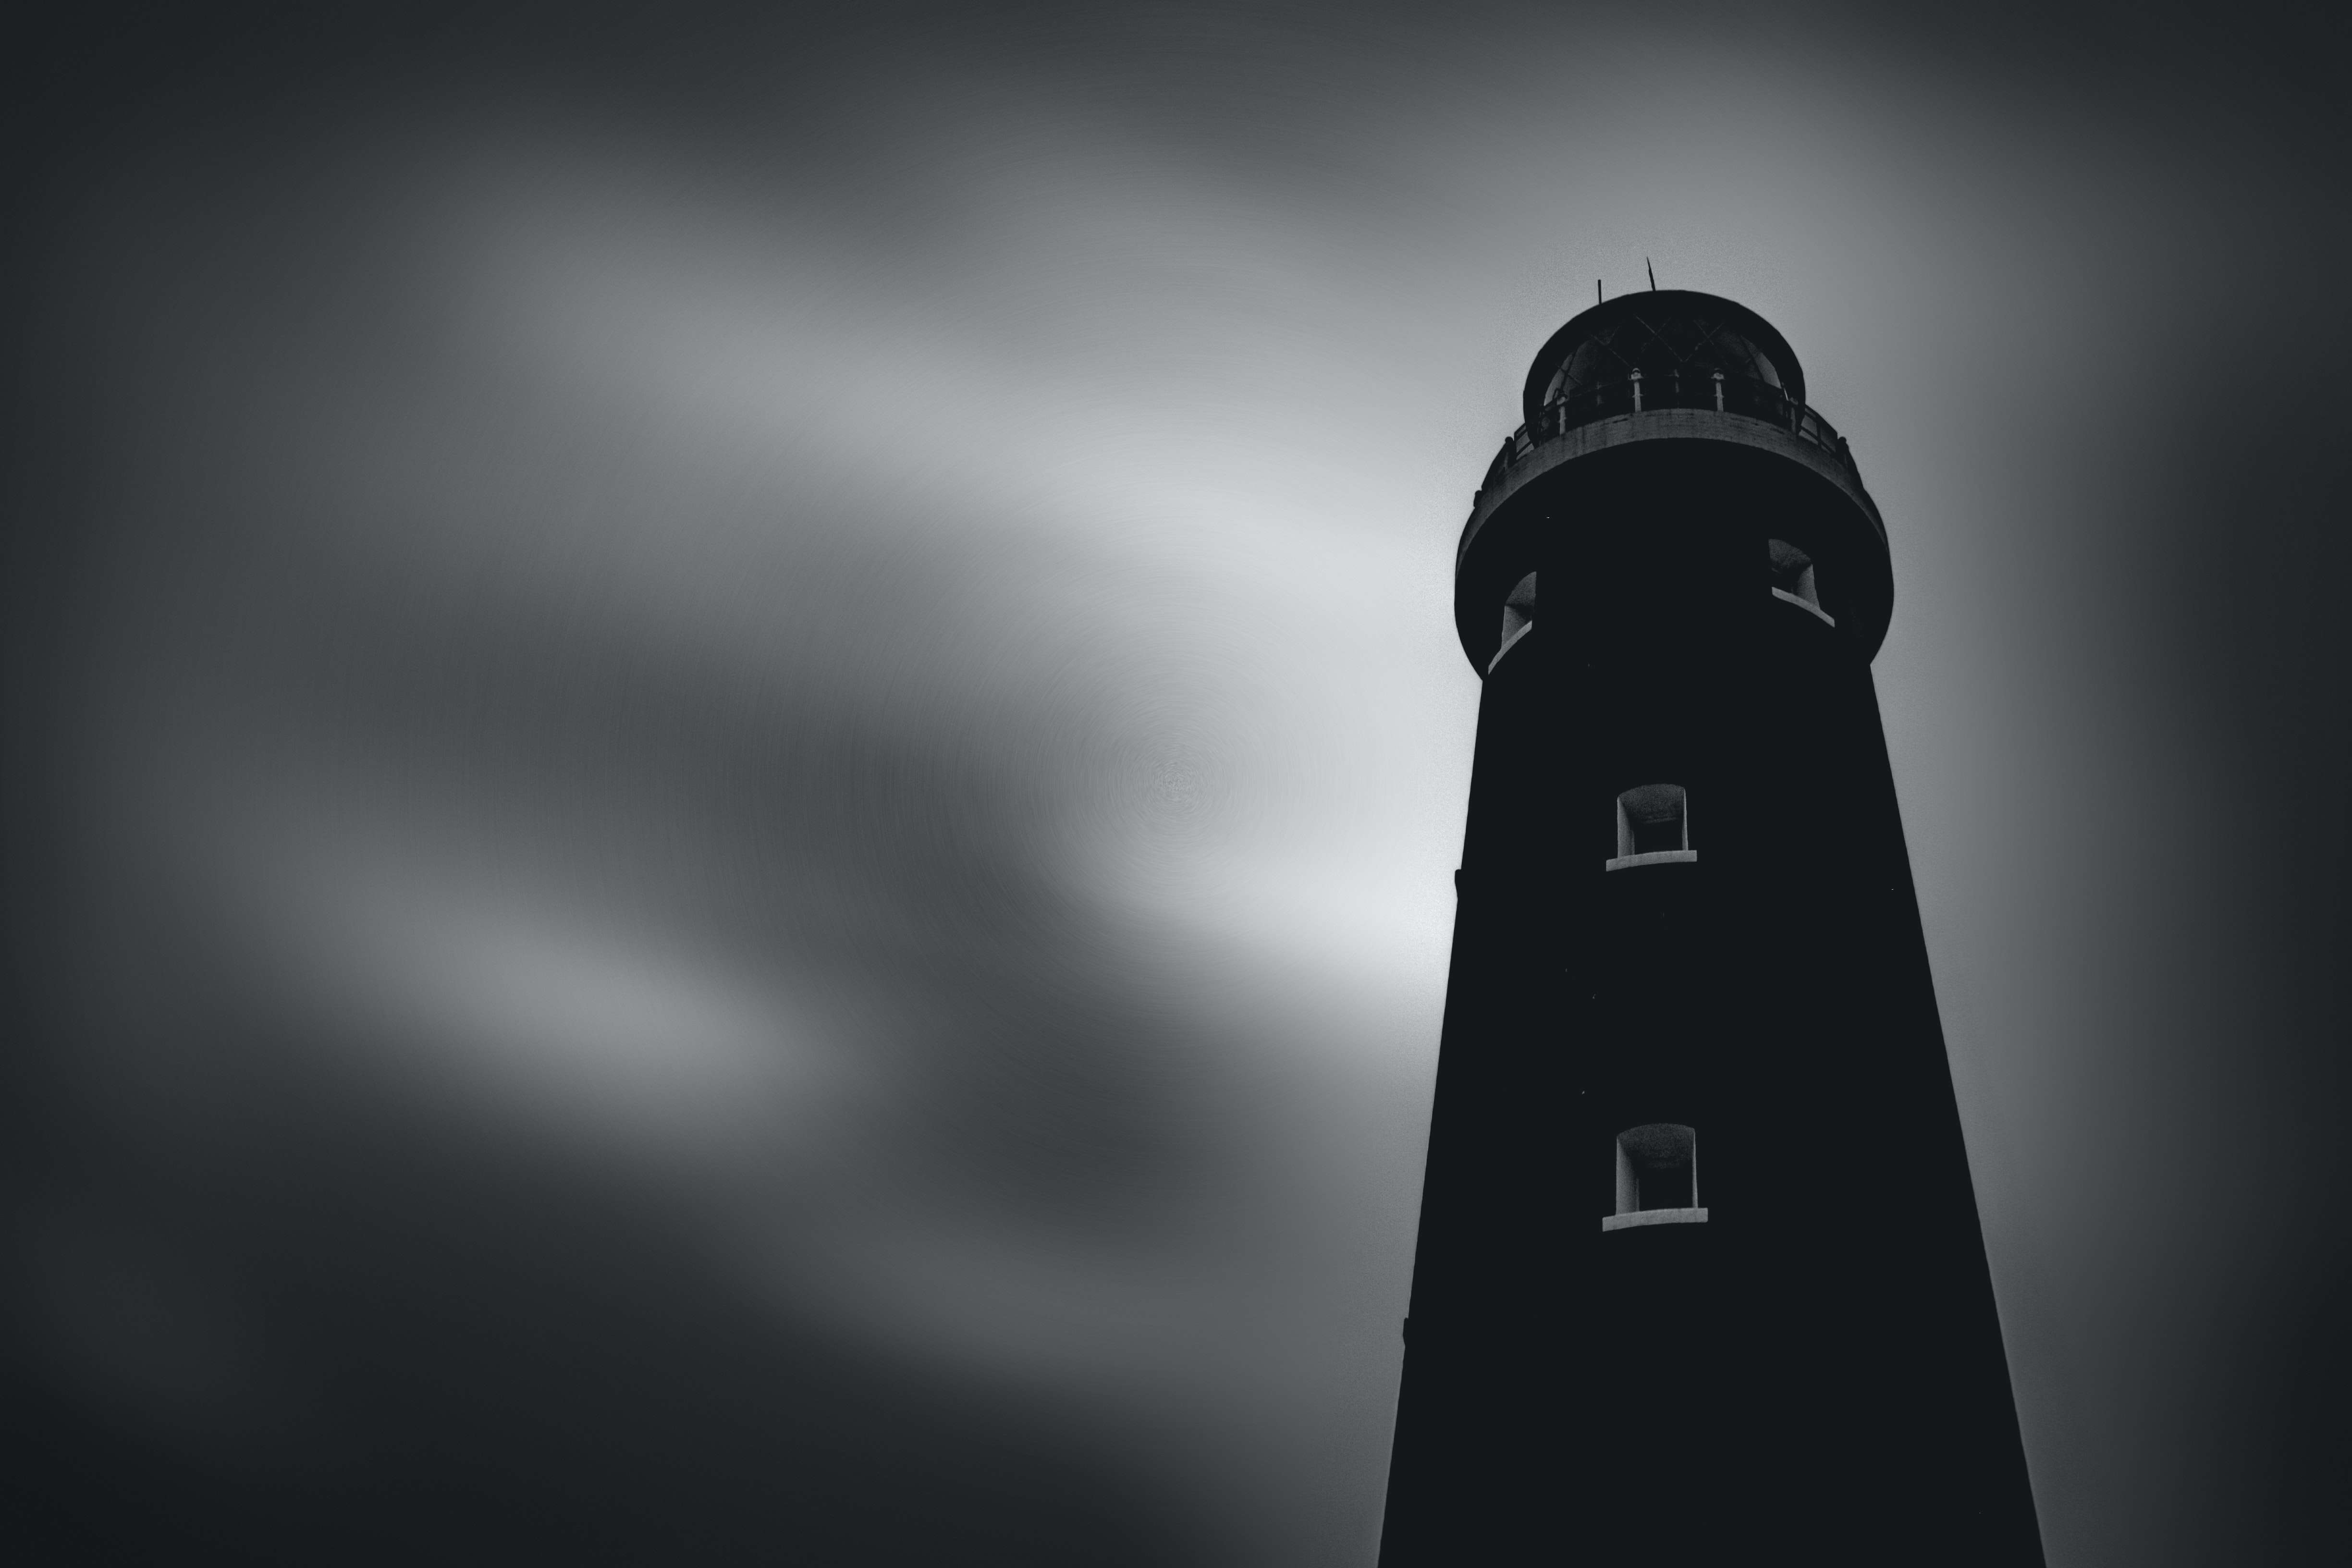 Black and white shot of traditional lighthouse against cloudy sky